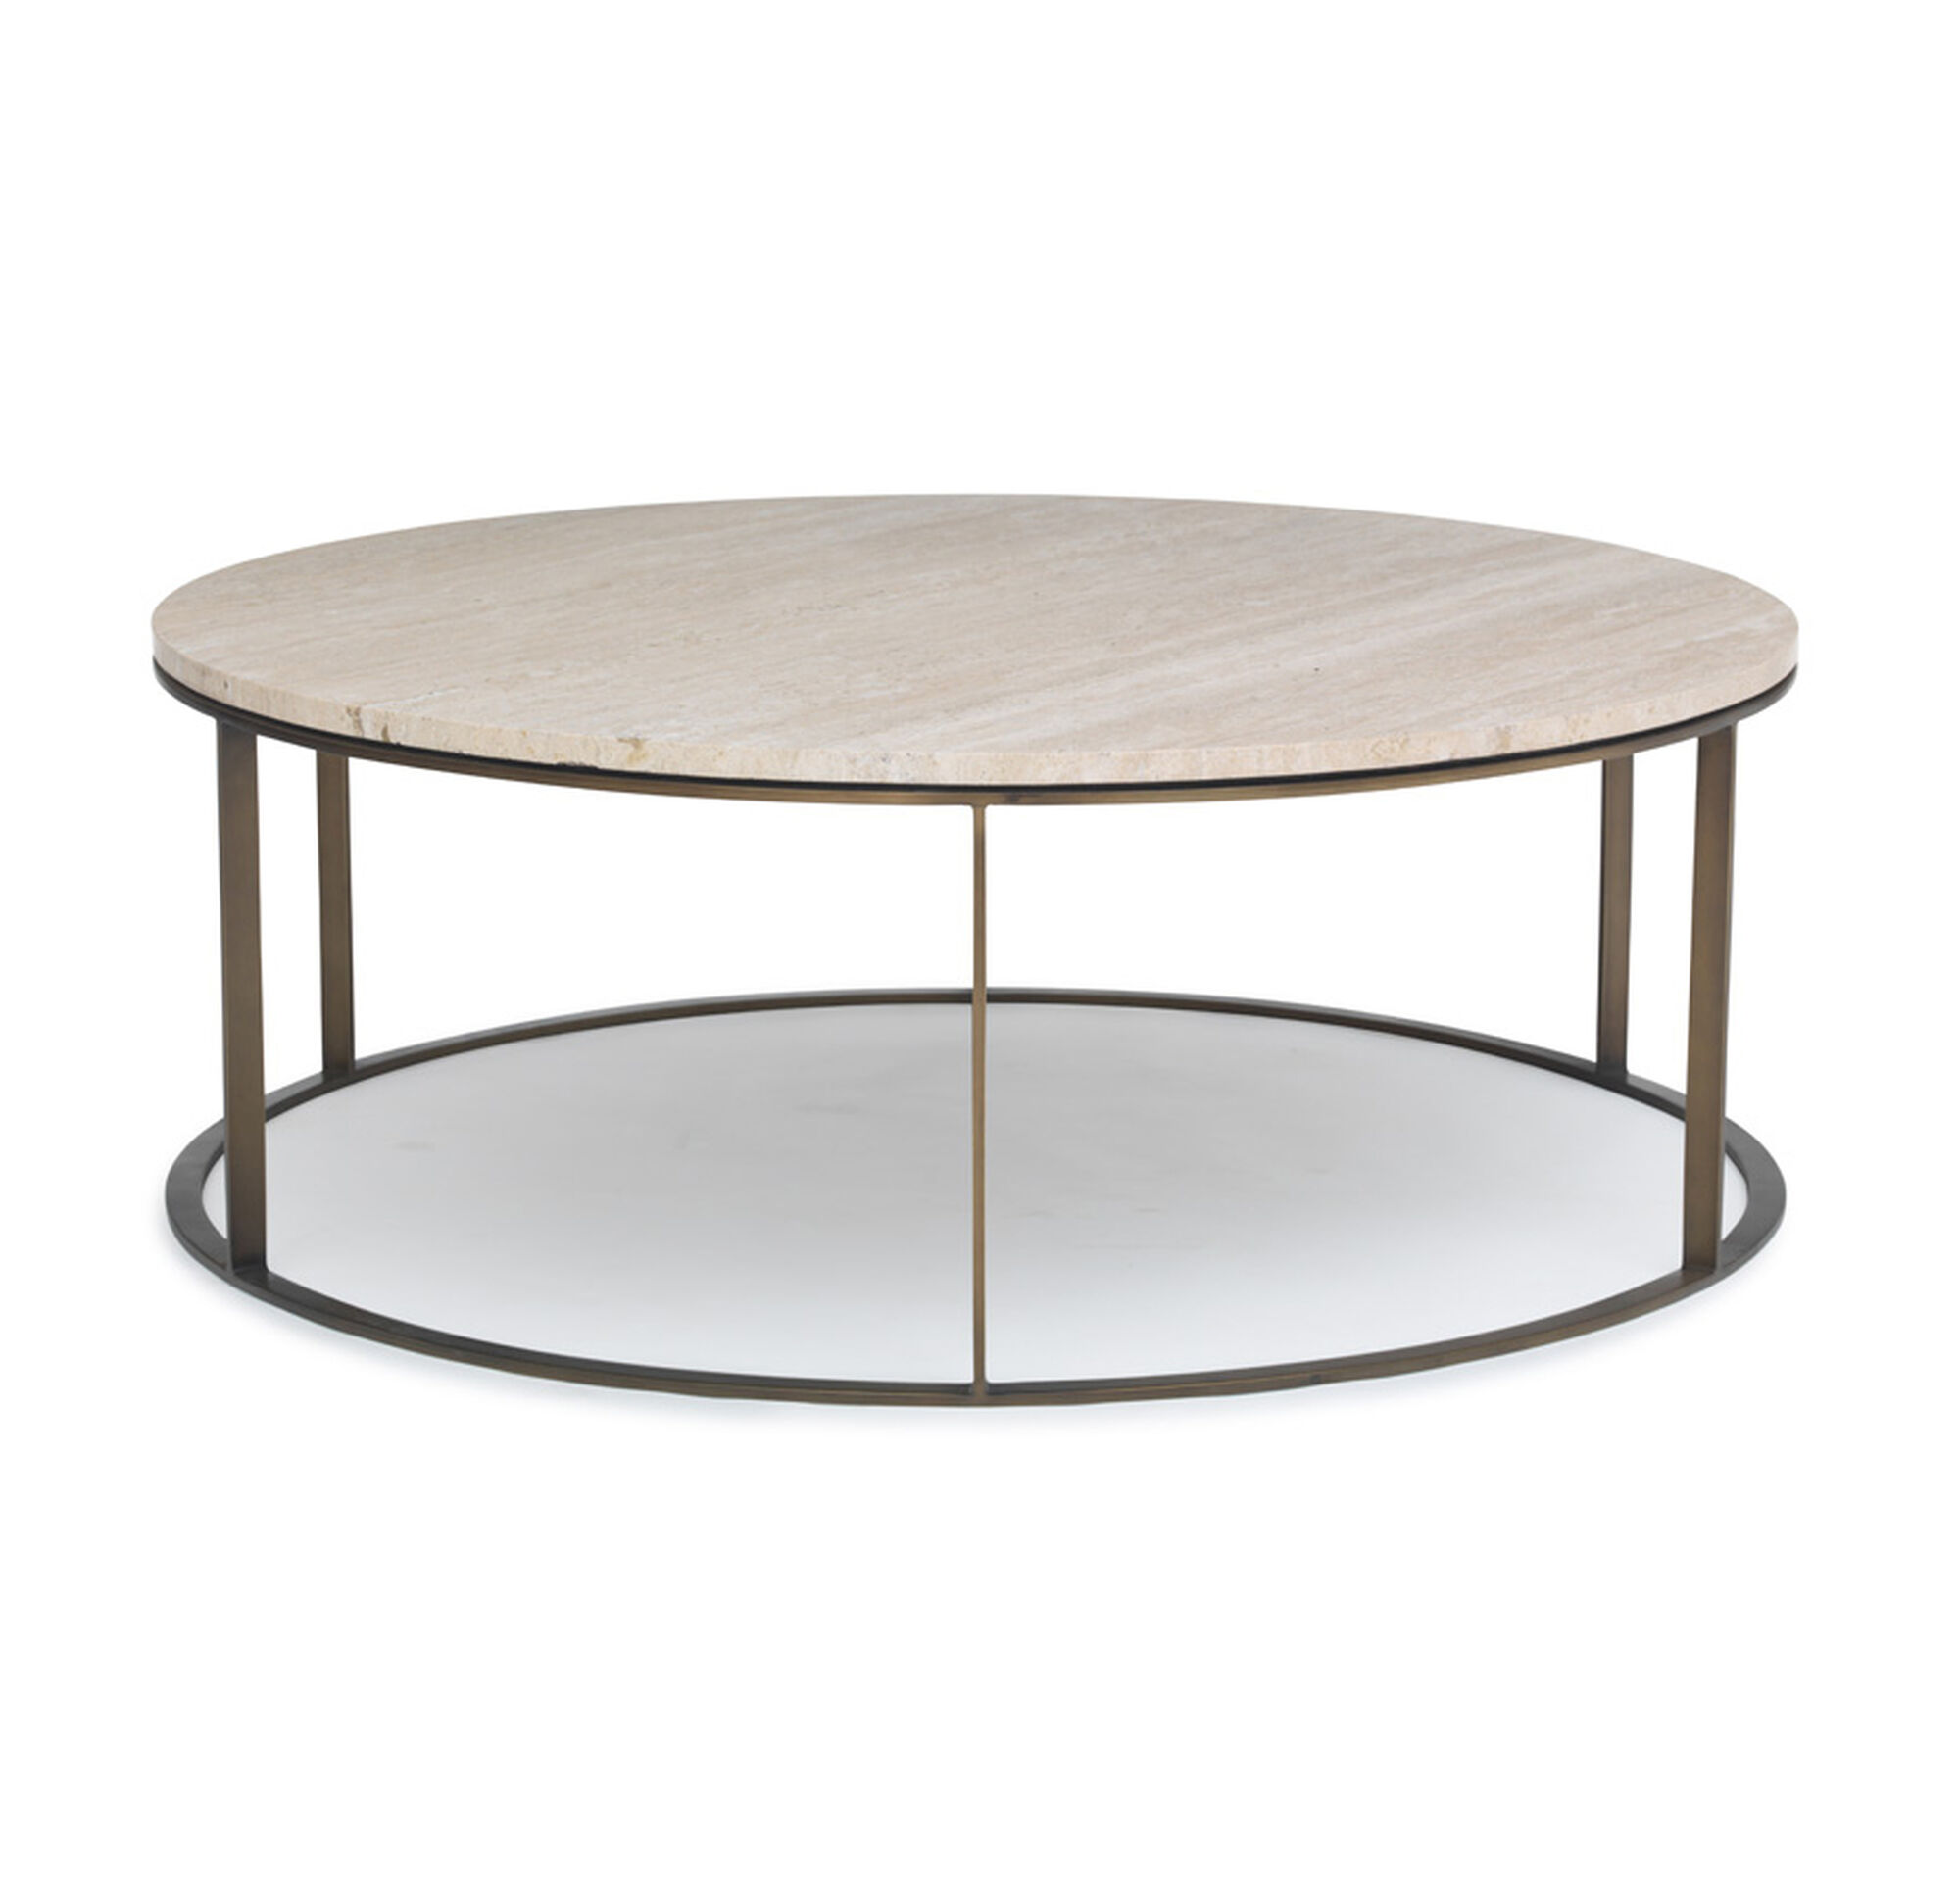 Design Gold Cocktail Table allure round cocktail table